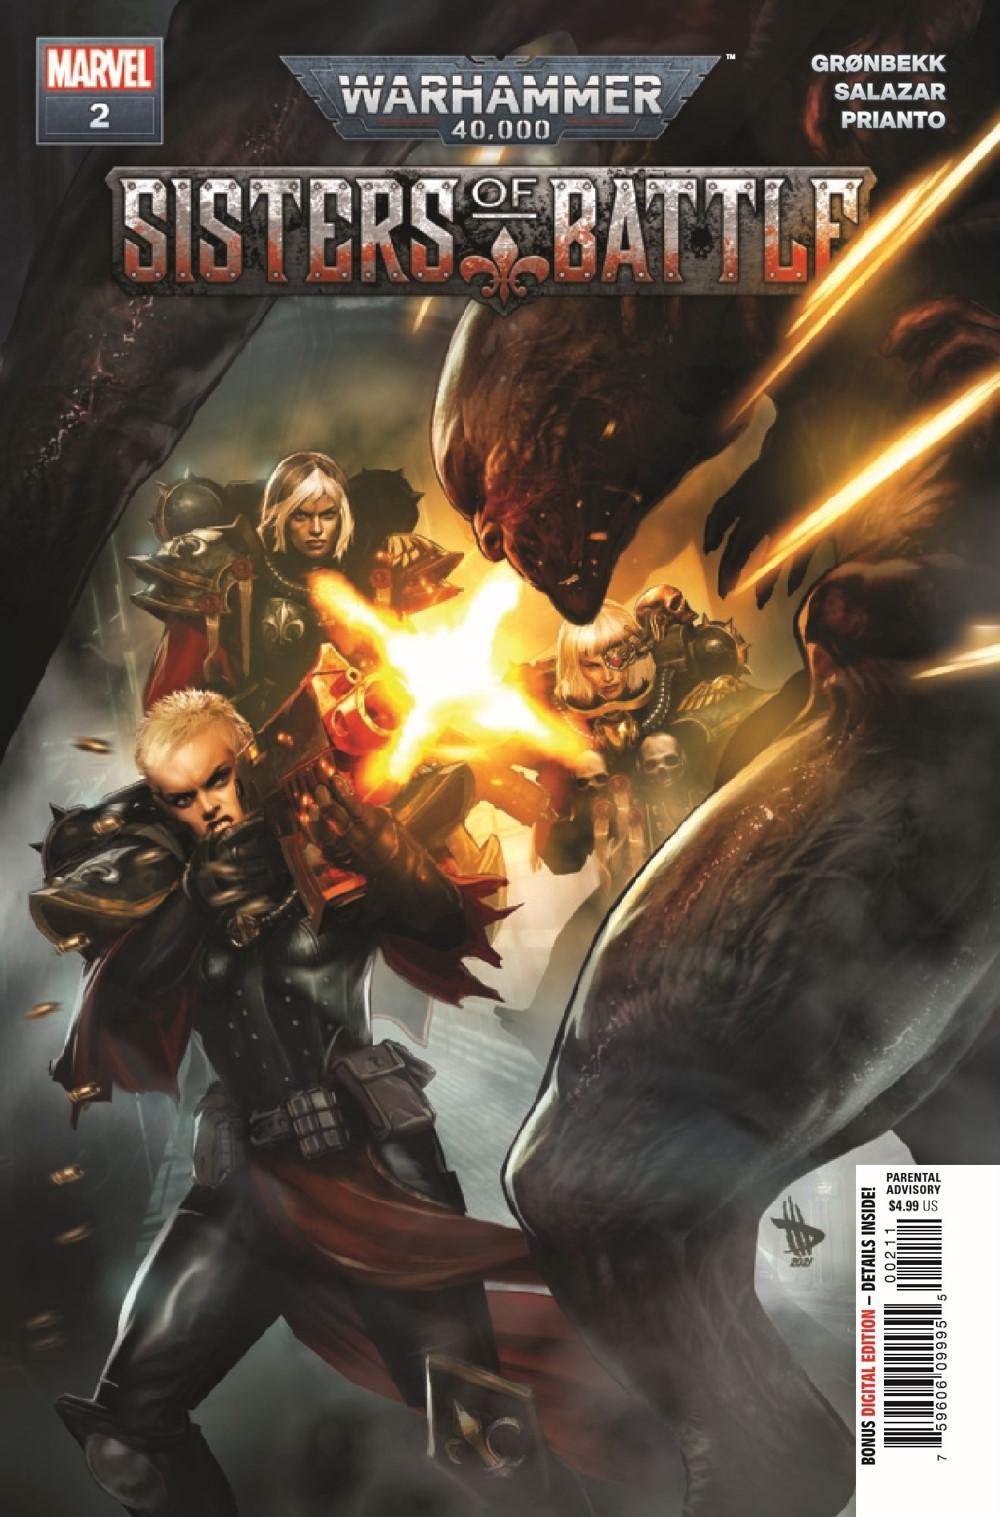 WARHAMMERSOB2021002_Preview-1 ComicList Previews: WARHAMMER 40000 SISTERS OF BATTLE #2 (OF 5)